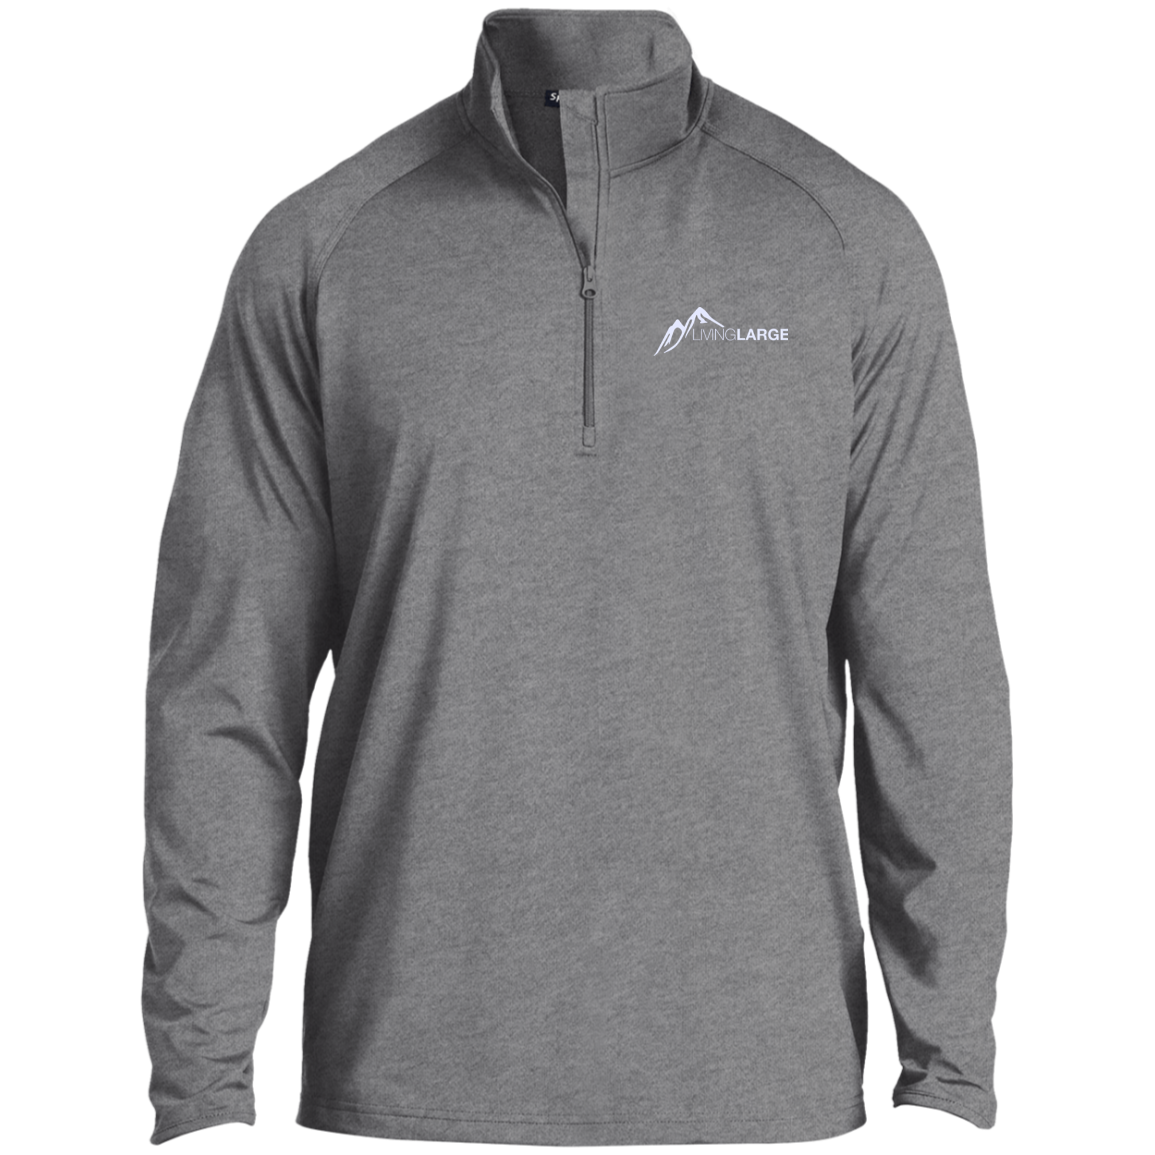 Living Large - The Simply Sporty White Peak 1/2 Zip Raglan Performance Pullover